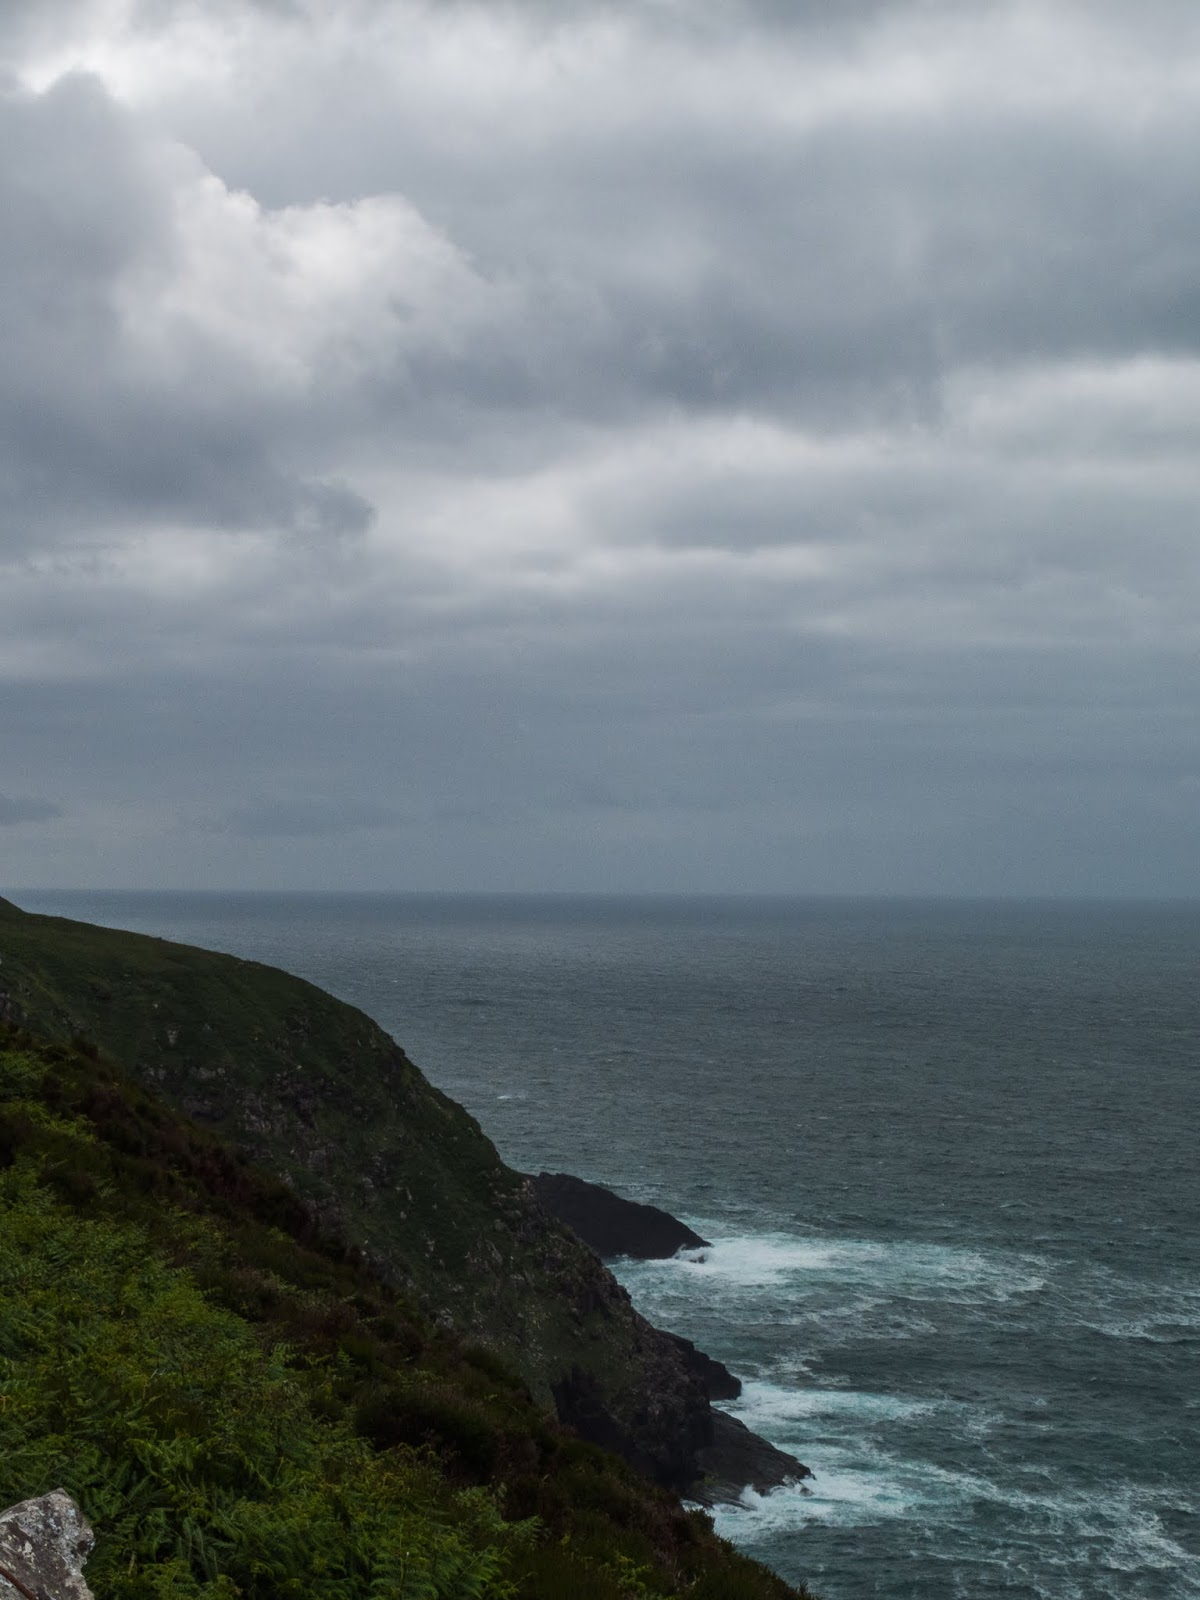 View of the North Atlantic Ocean from Brandon Point in County Kerry.